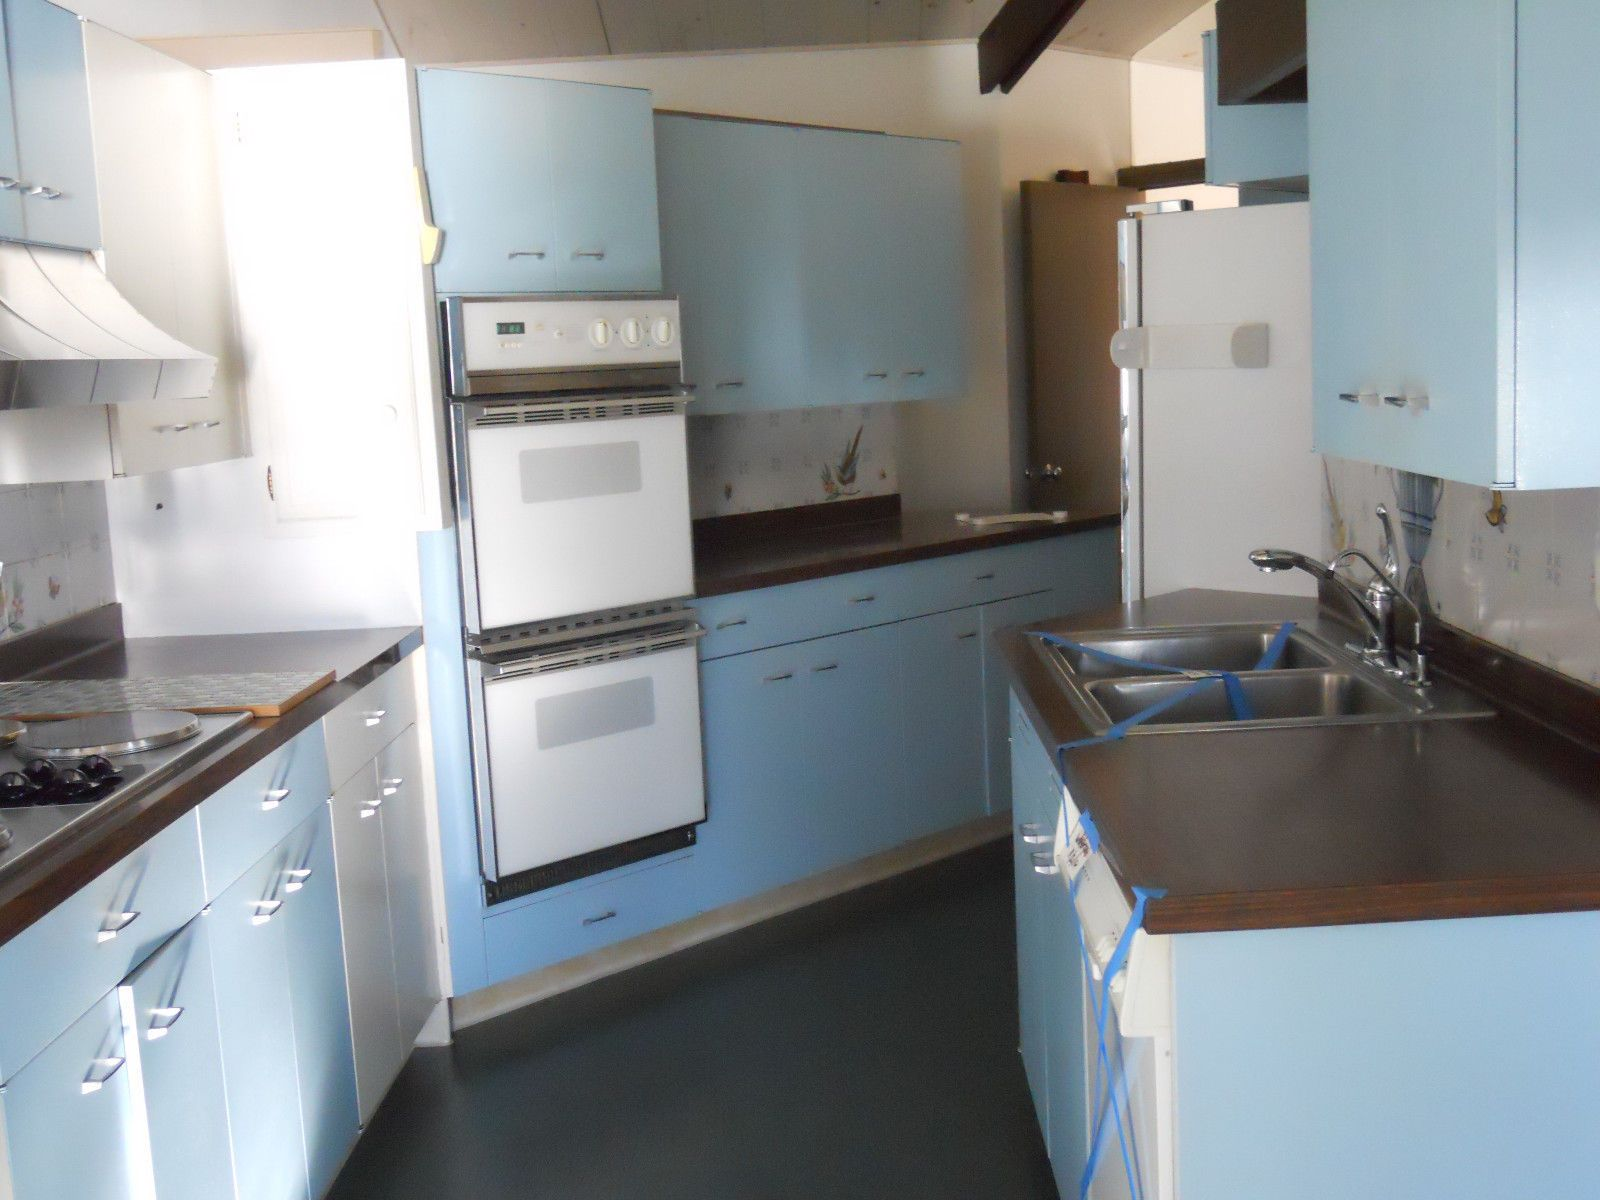 St Charles Metal Cabinets Full Kitchen Blue & White in Color